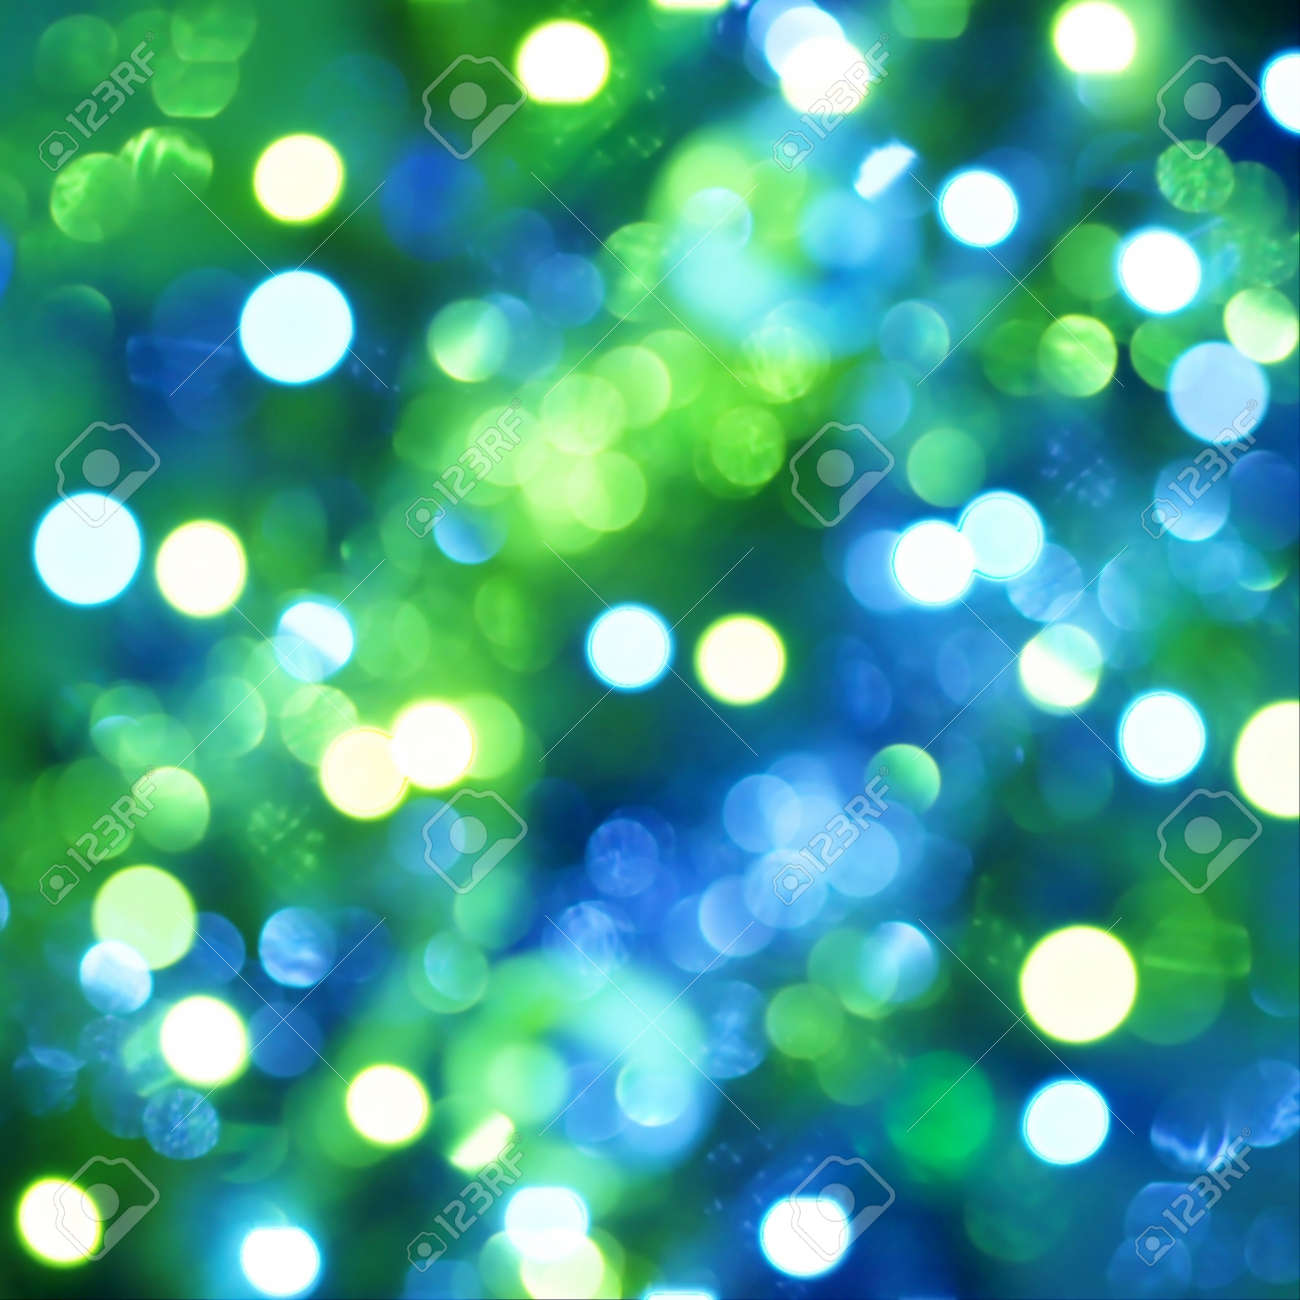 Defocused light dots background Stock Photo - 8203481